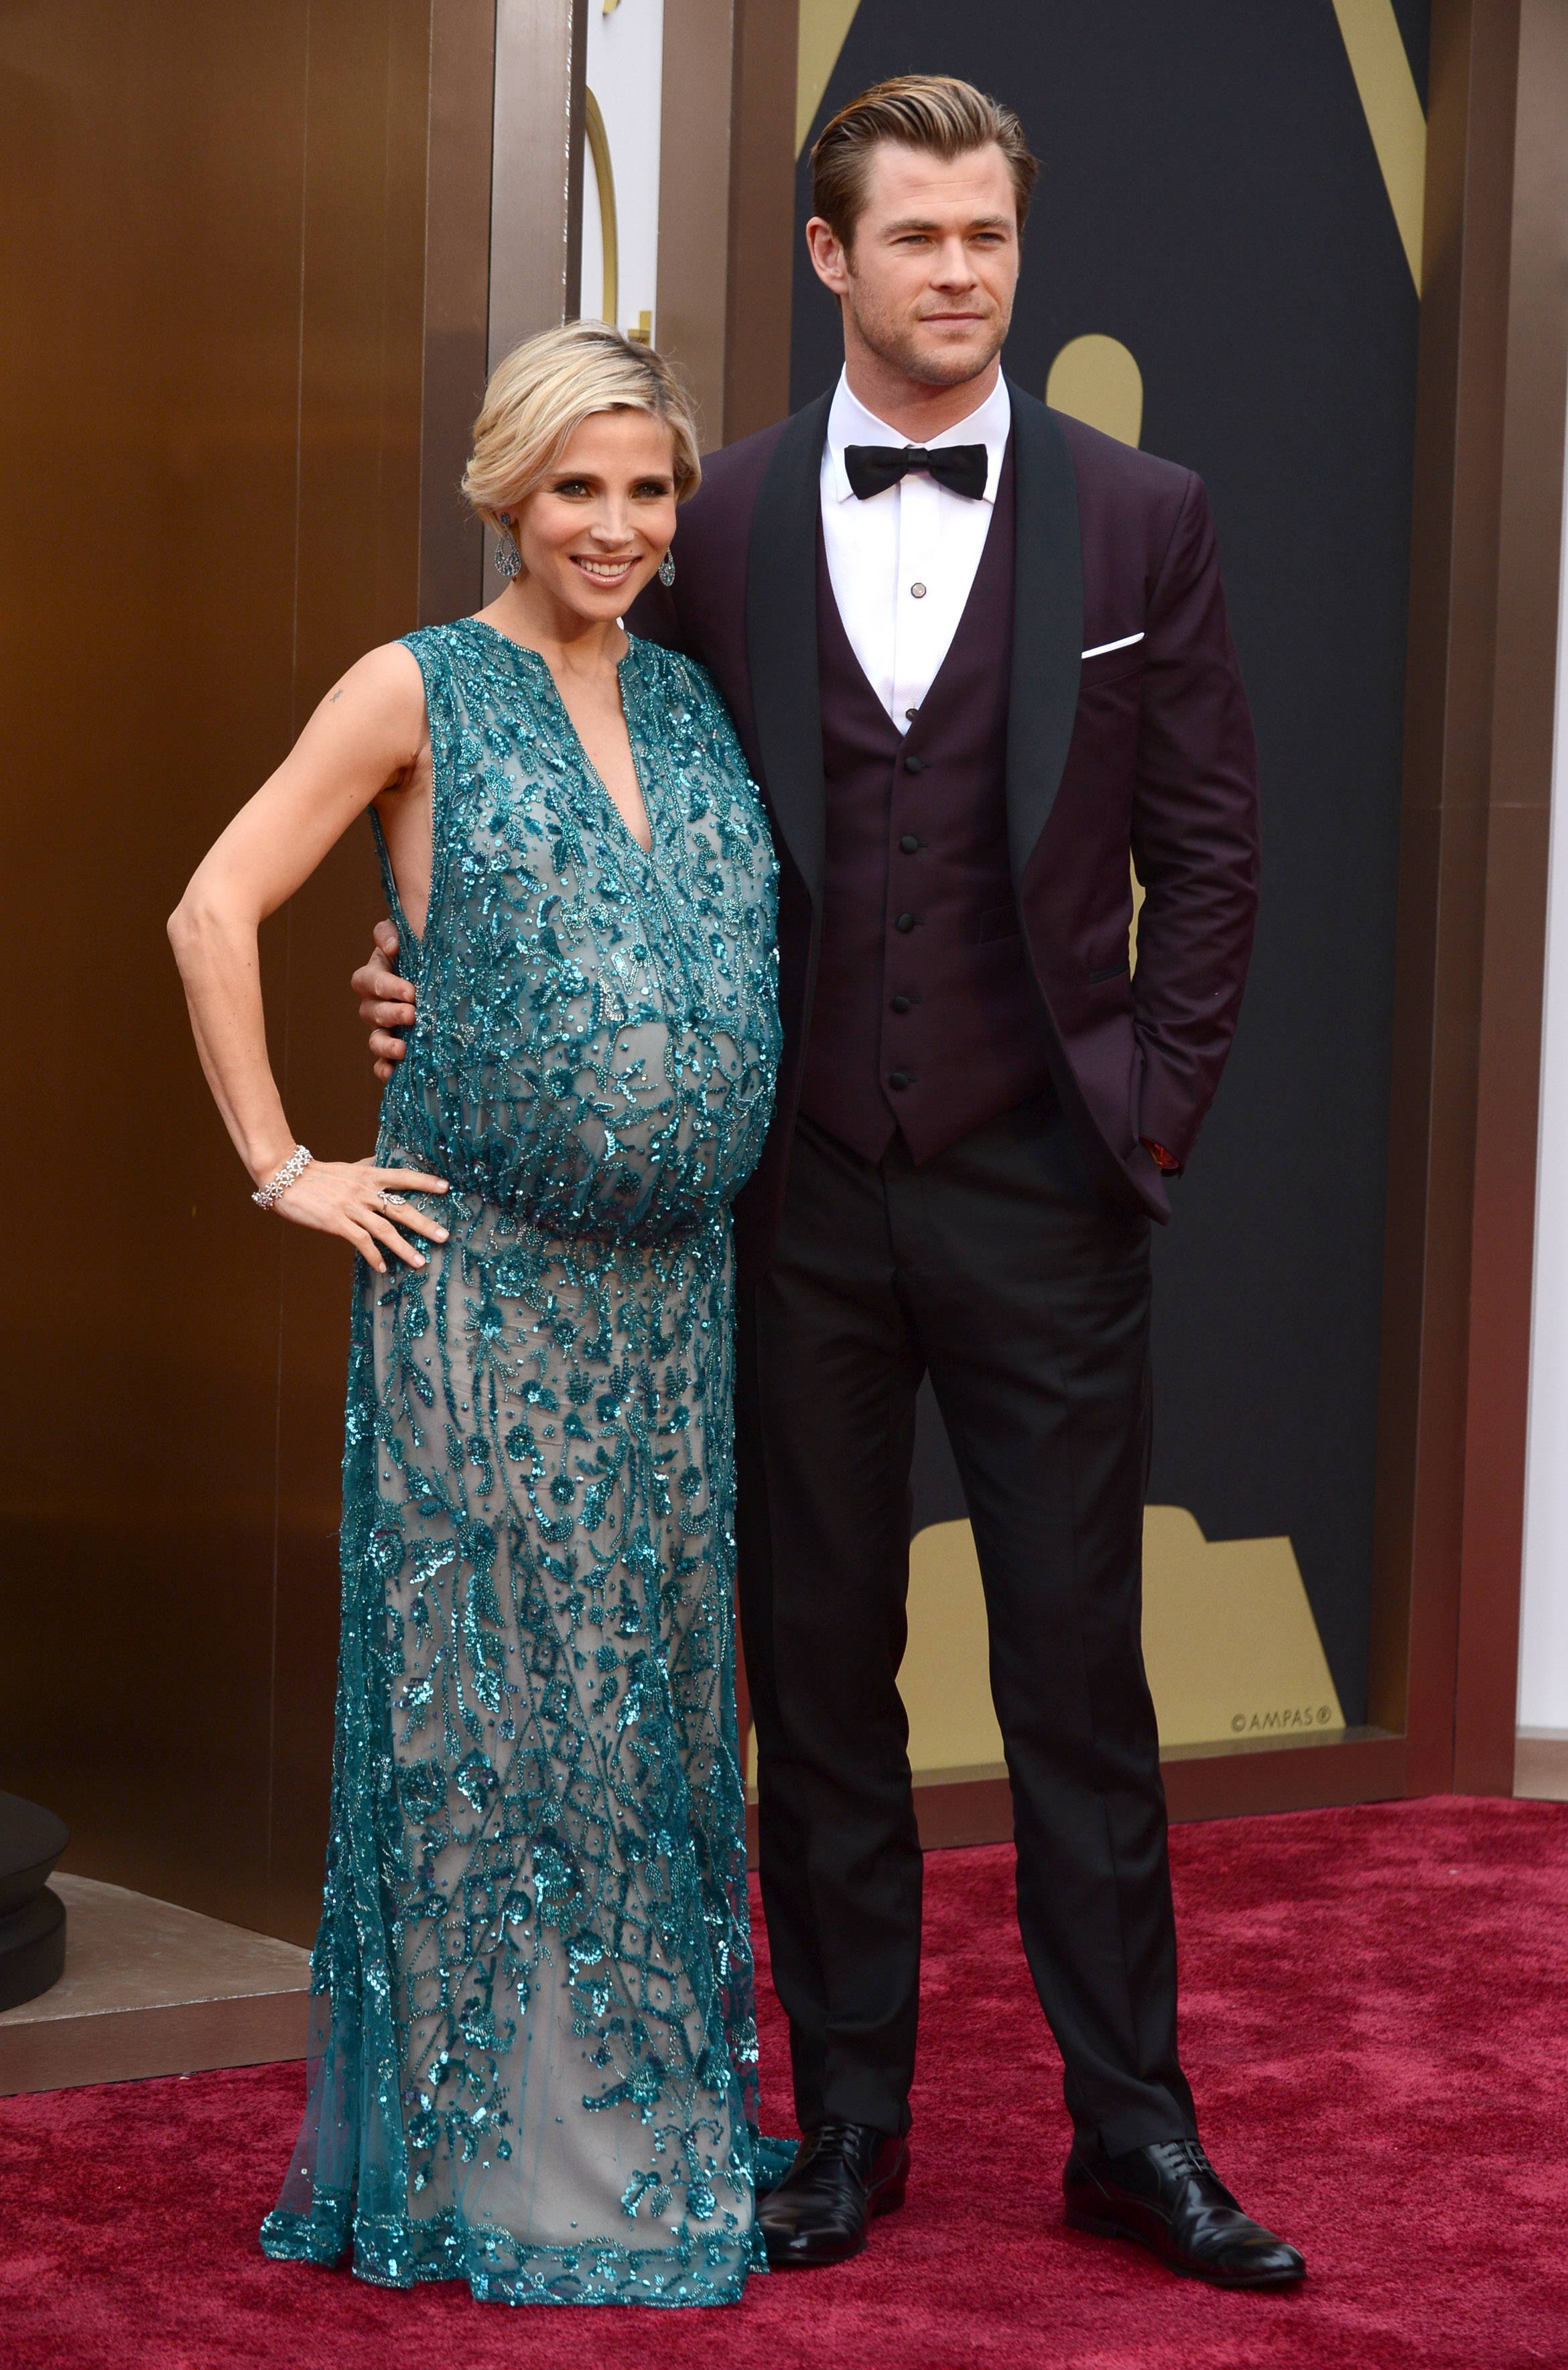 Elsa Pataky who's expecting twins with her husband, actor Chris Hemsworth, is all smiles as the couple make their way into the theater.